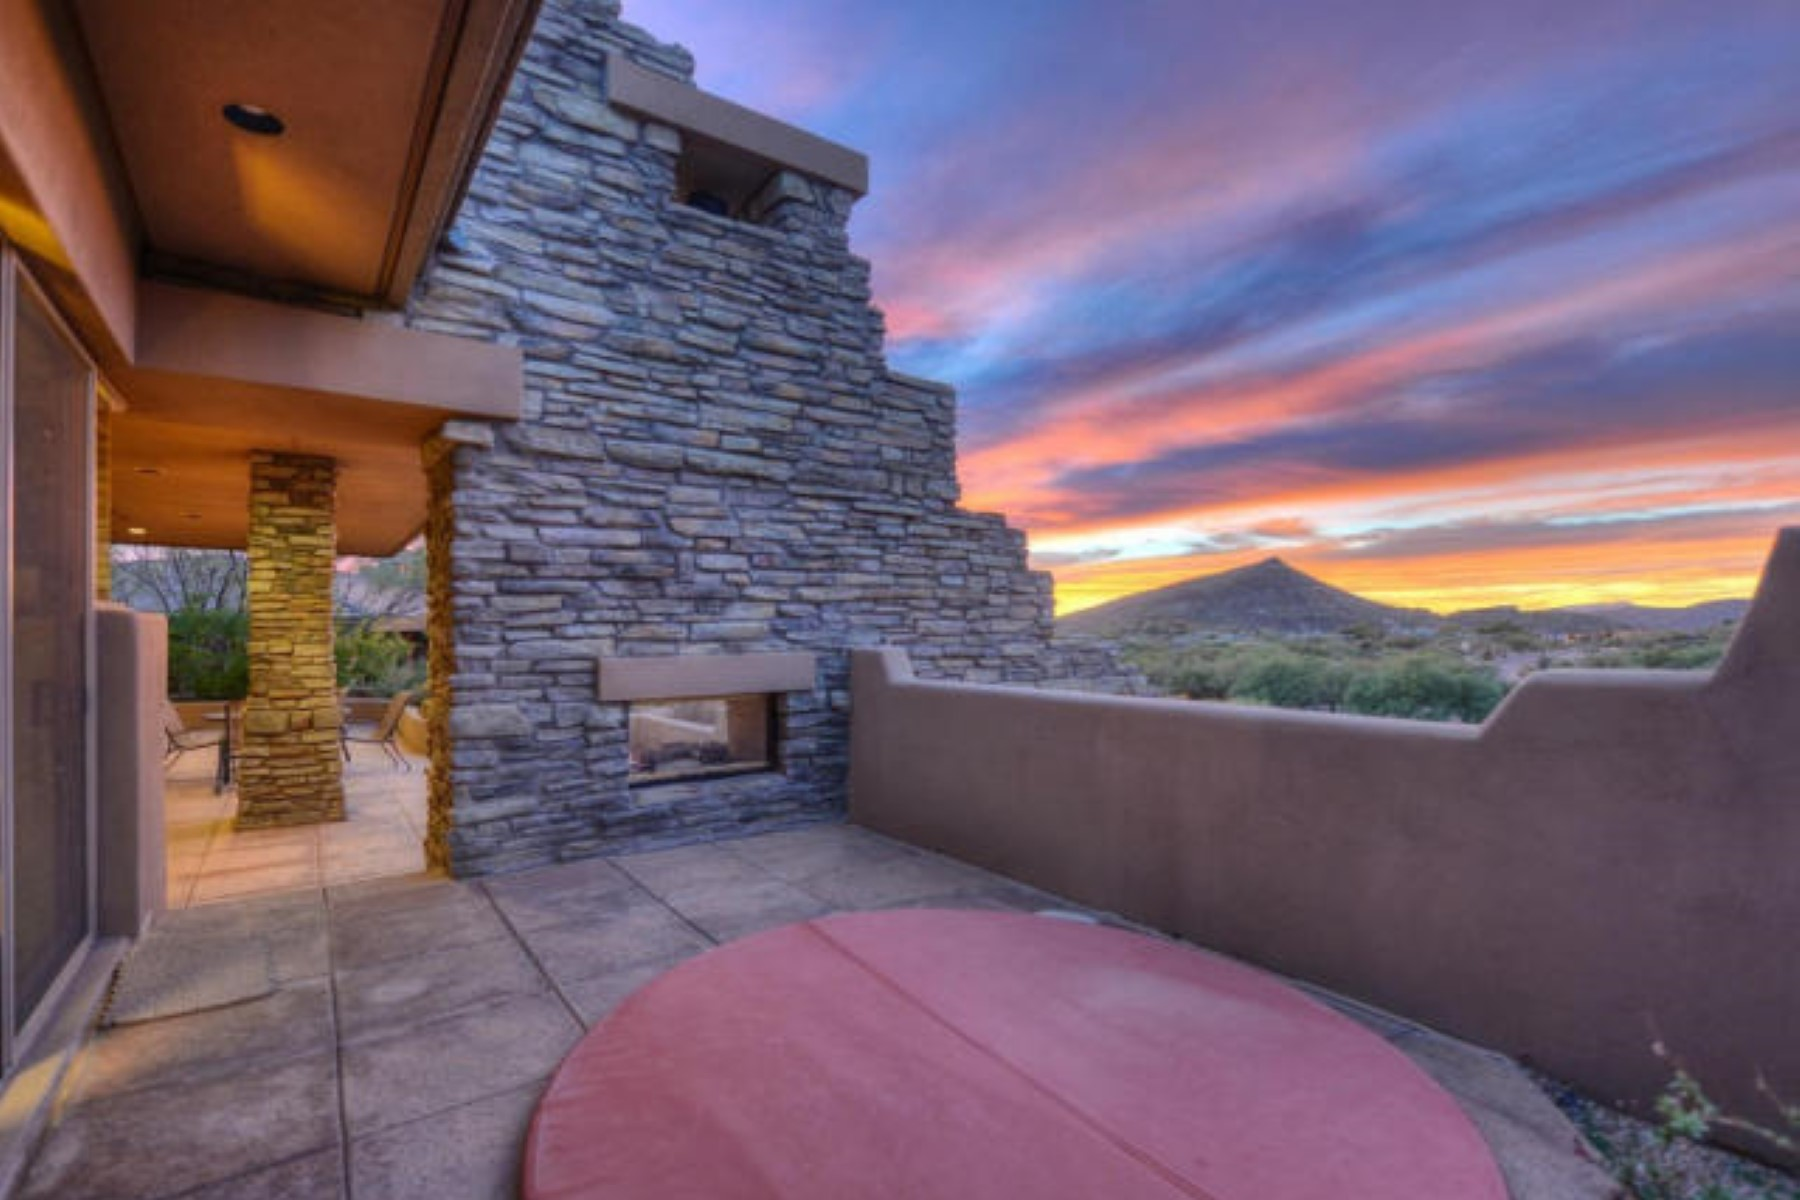 Property Of Furnished Turn-Key Patio Home With Timeless Views In Desert Mountain